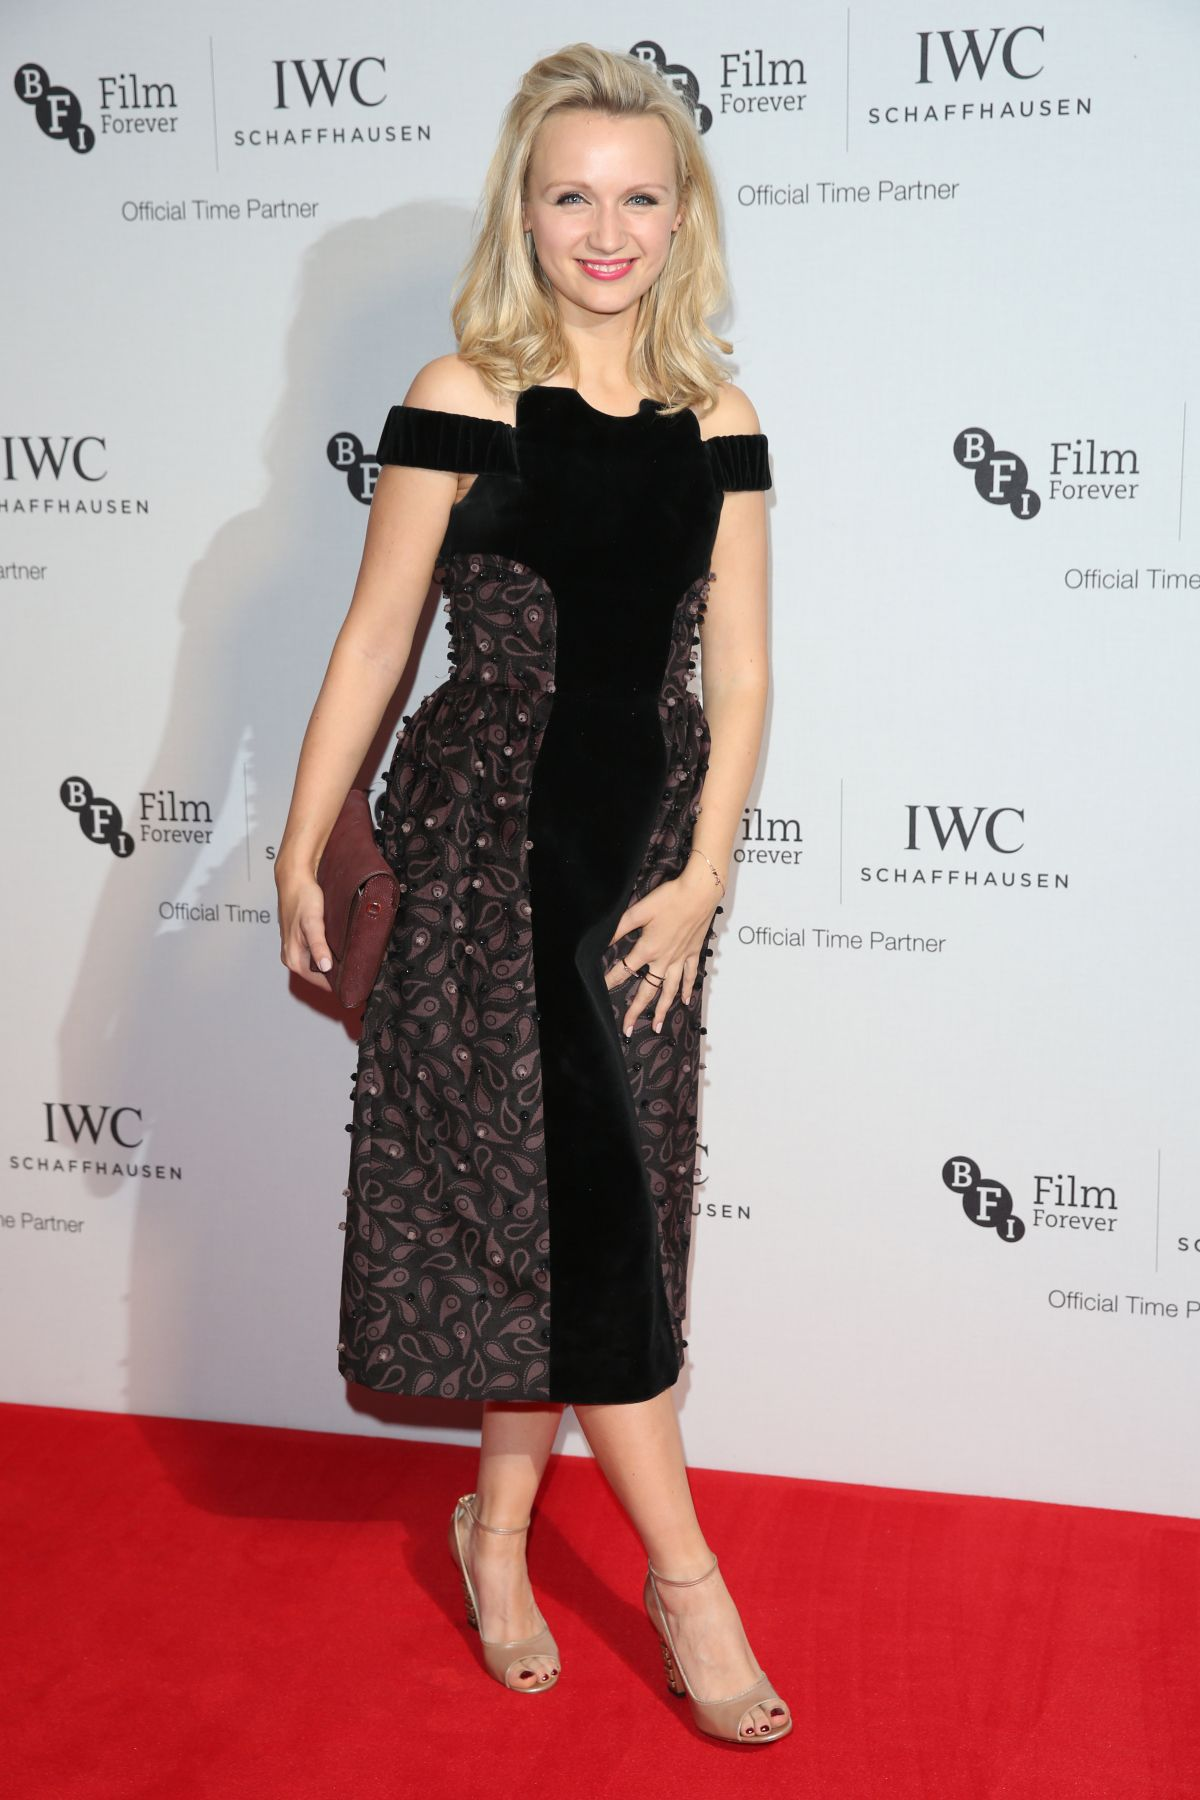 EMILY BERRINGTON at IWC Schaffhausen Dinner in Honour of BFI Rosewood in London 10/04/2016